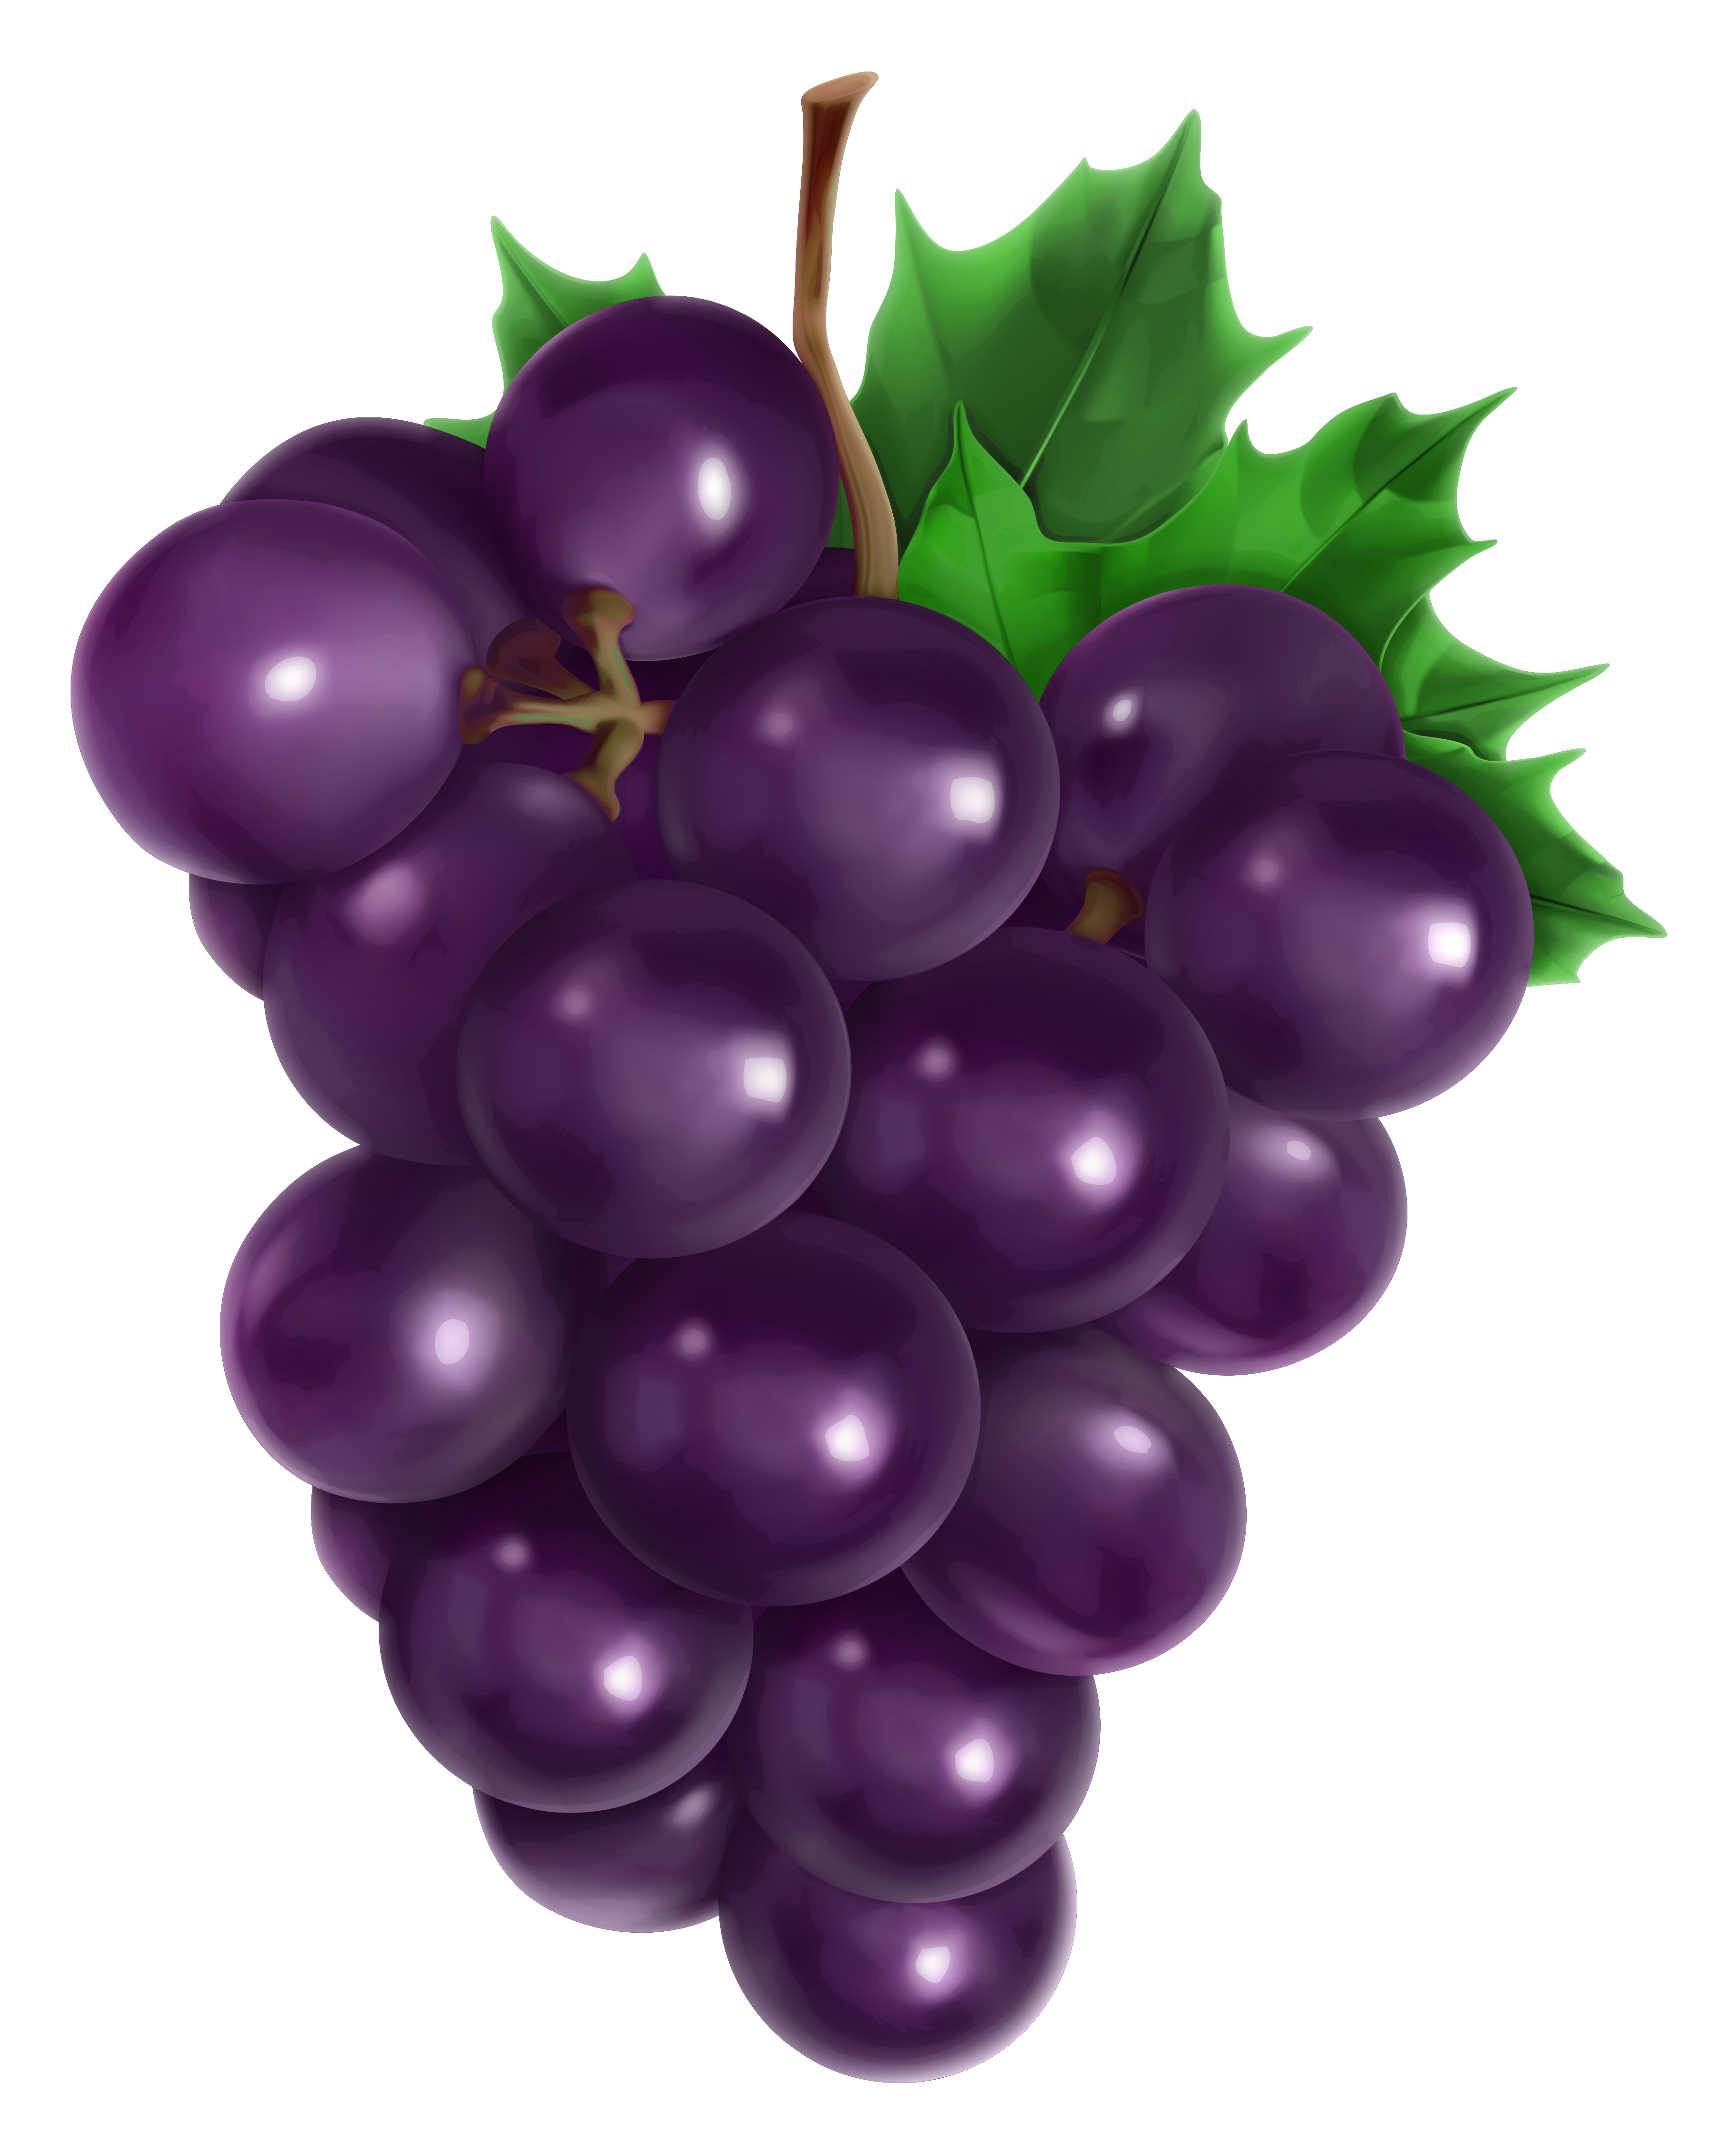 Vegetables clipart fair. Transparent grape png picture